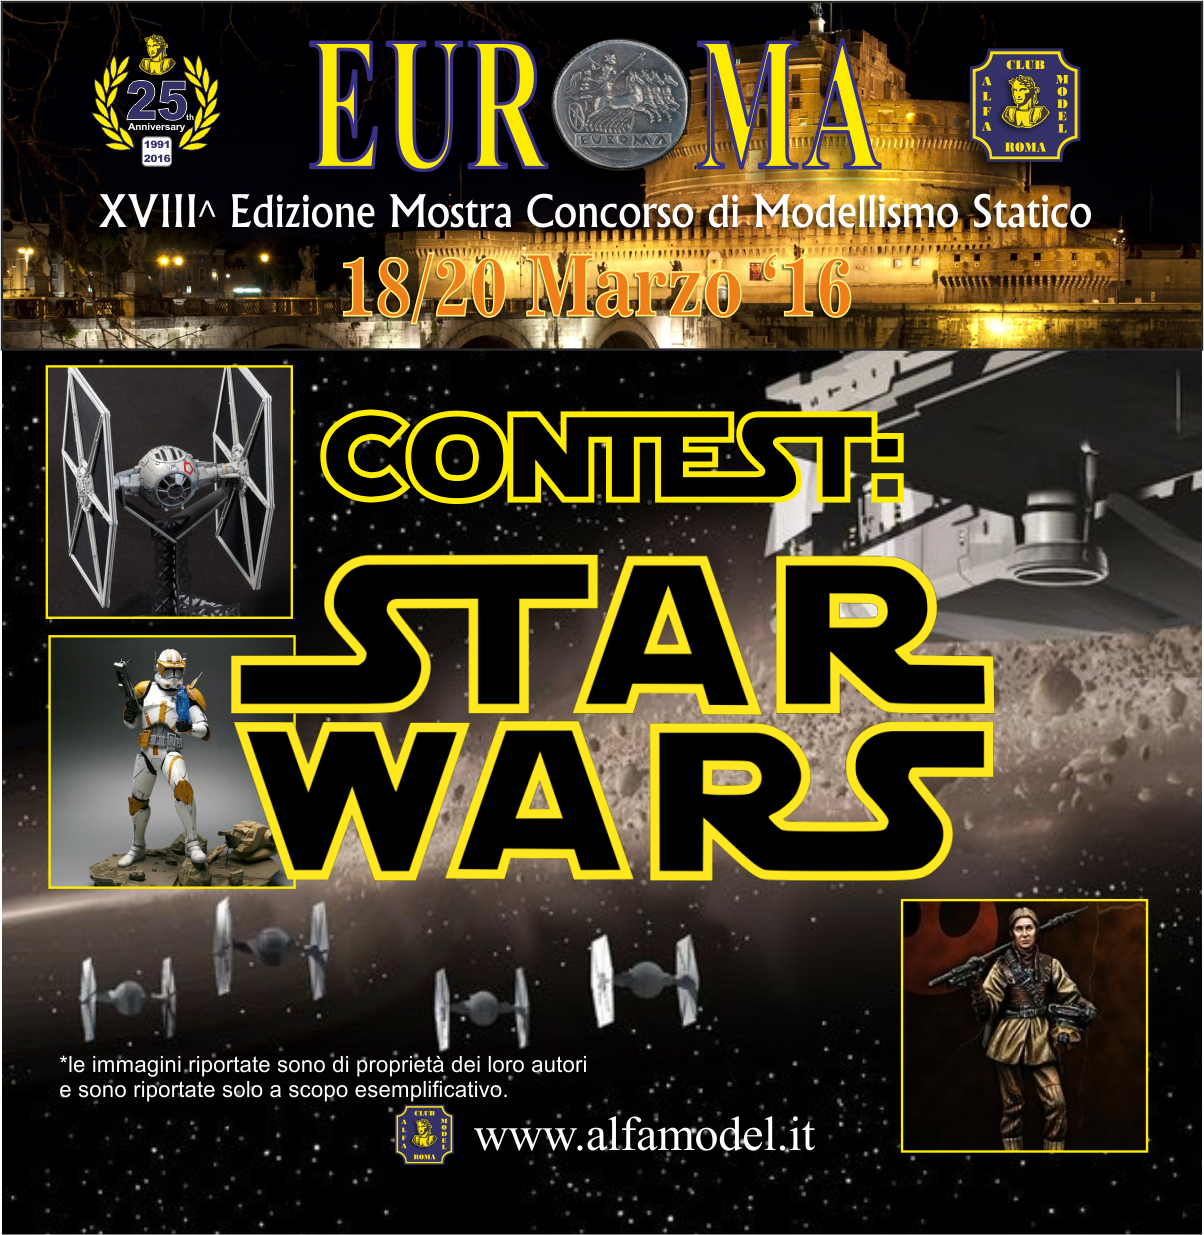 Contest Star Wars